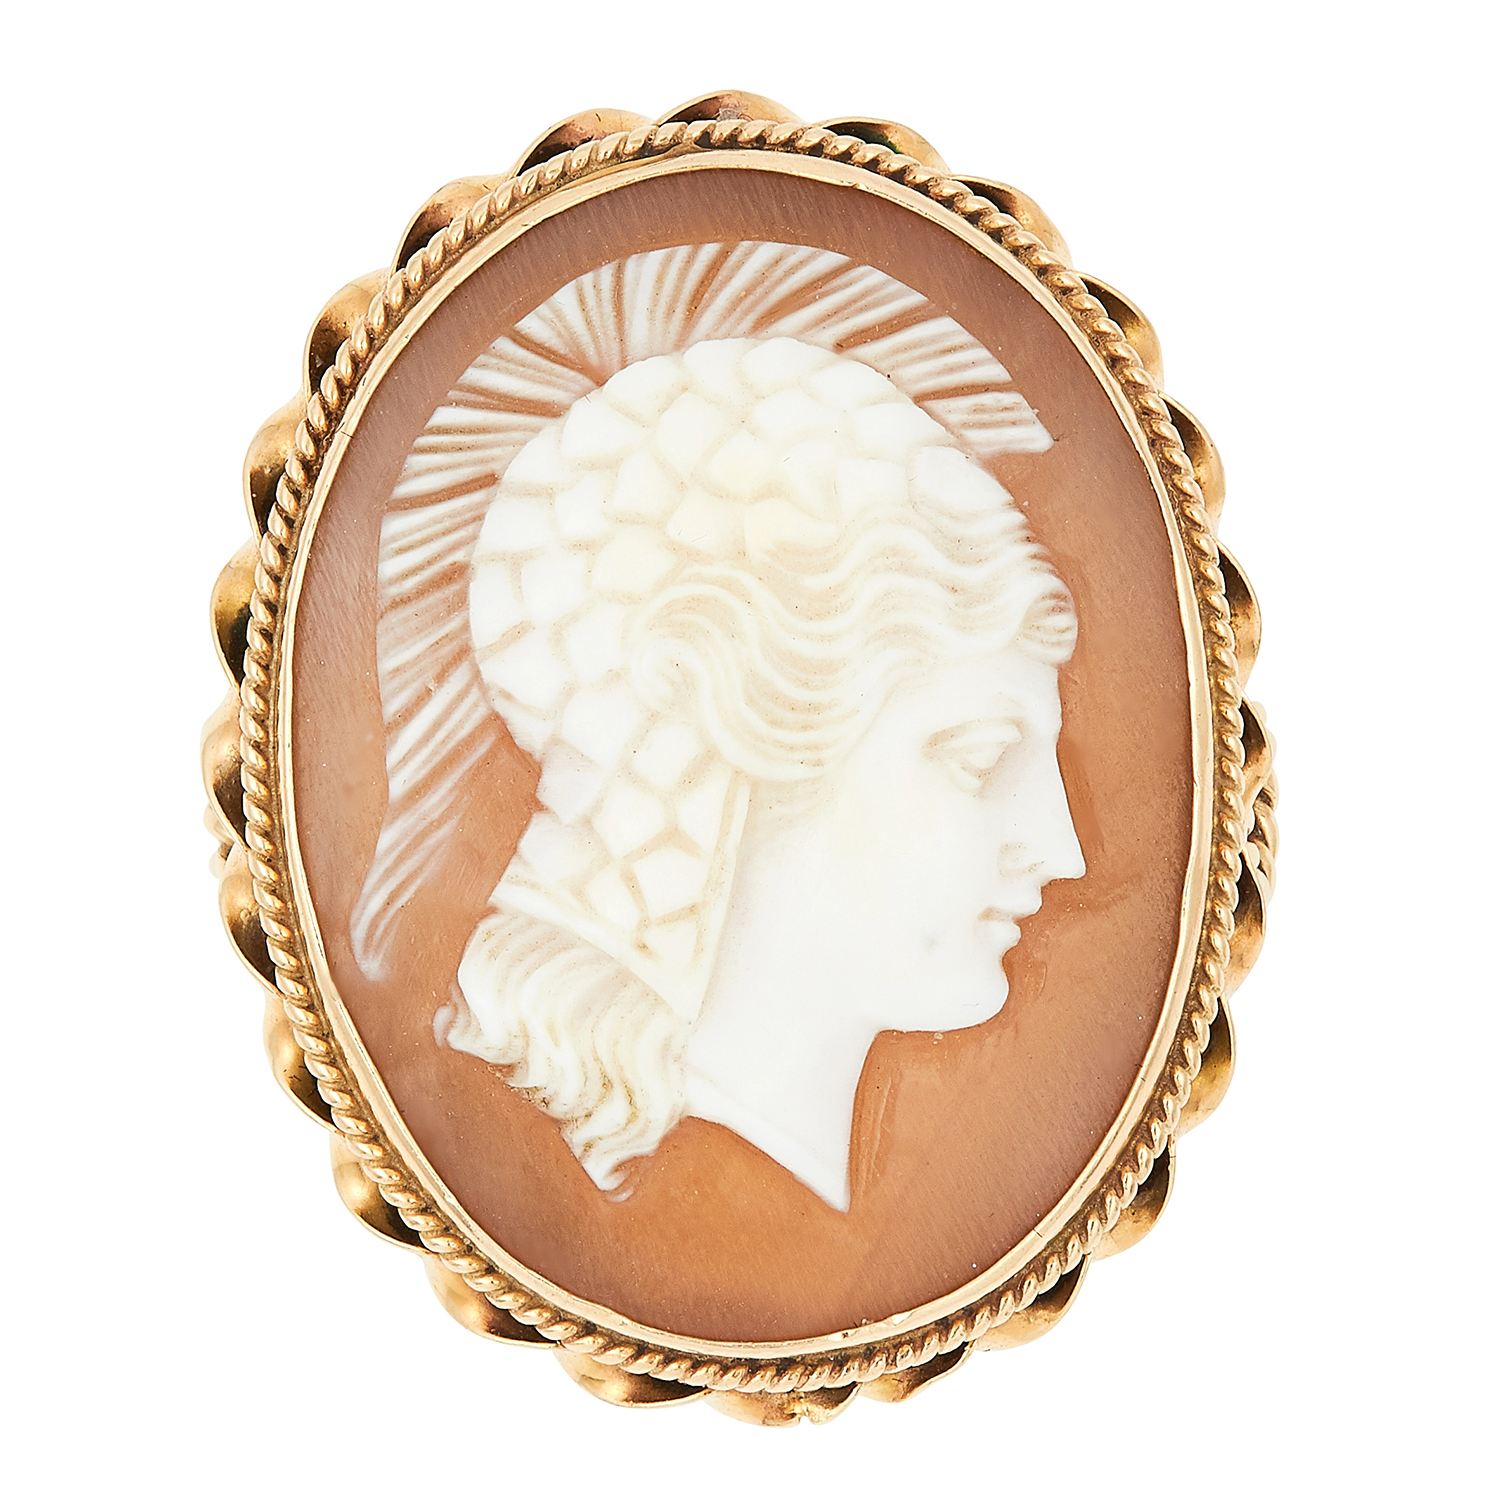 Los 19 - ANTIQUE CAMEO RING, depicting a Roman soldier in a decorative border, size L / 5.5, 6.1g.